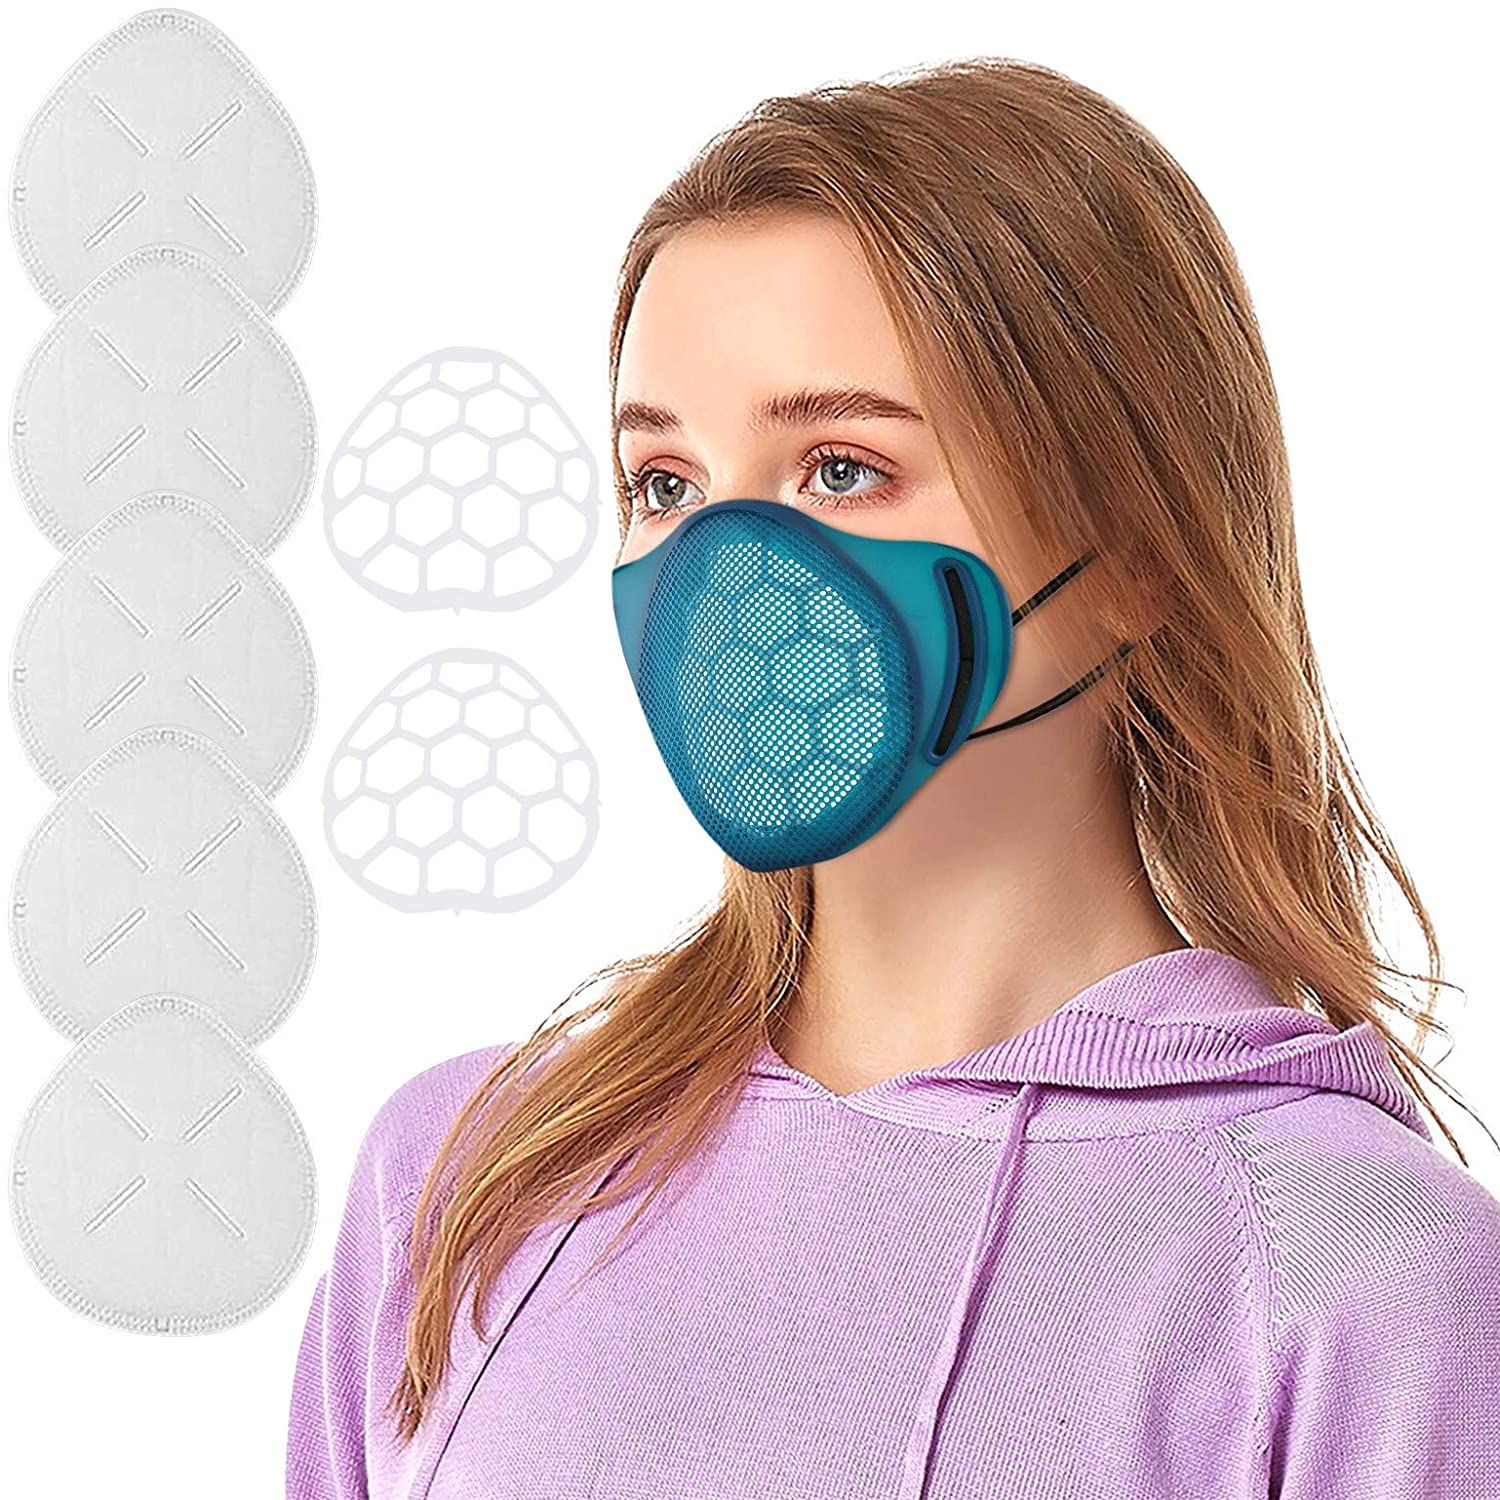 Efanhouy Adult Kids Reusable Silicone Face_mask with 5PCS Non-woven Replaceable Filters & 2 Inner Face Bracket,Unisex Dustproof Breathable Mouth Covering,Adjustable Comforts Wearing Face_masks